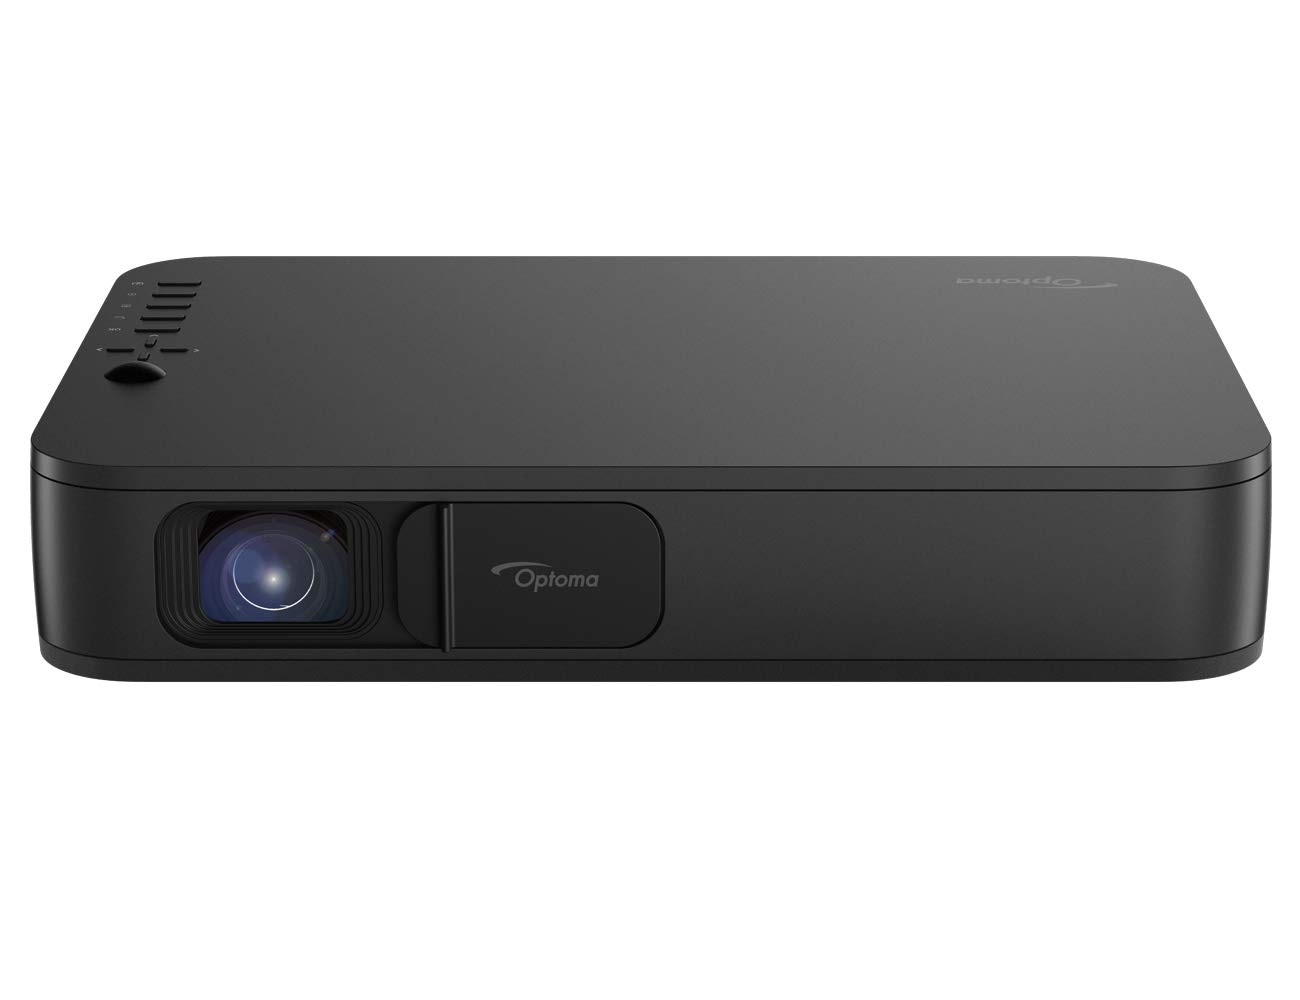 Optoma LH150 Portable 1080p LED Mini Projector with Battery, for Outdoor Movies or Office Presentations, 2.5 Hour Battery Life, USB Display Screen Mirroring, Smartphone Compatible by Optoma